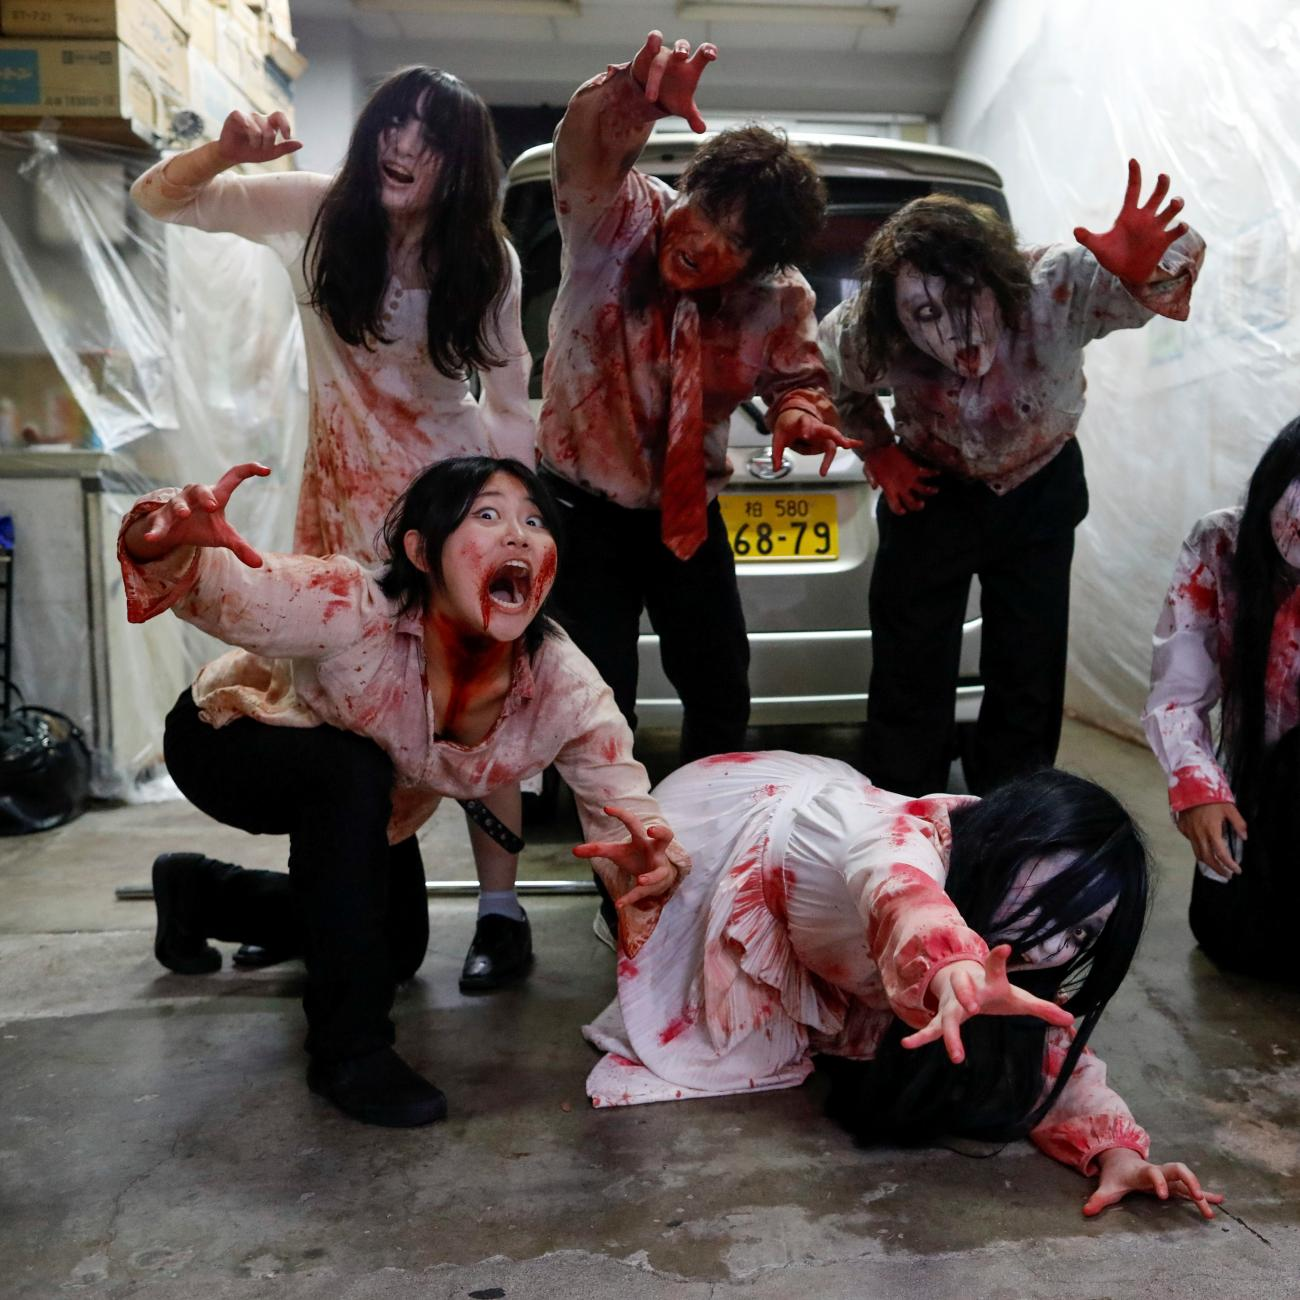 Actors dressed as zombies or ghouls pose for a photograph before their performance at a drive-in haunted house show by Kowagarasetai (Scare Squad), for people inside a car in order to maintain social distancing amid the spread of the coronavirus disease (COVID-19), at a garage in Tokyo, Japan July 3, 2020.